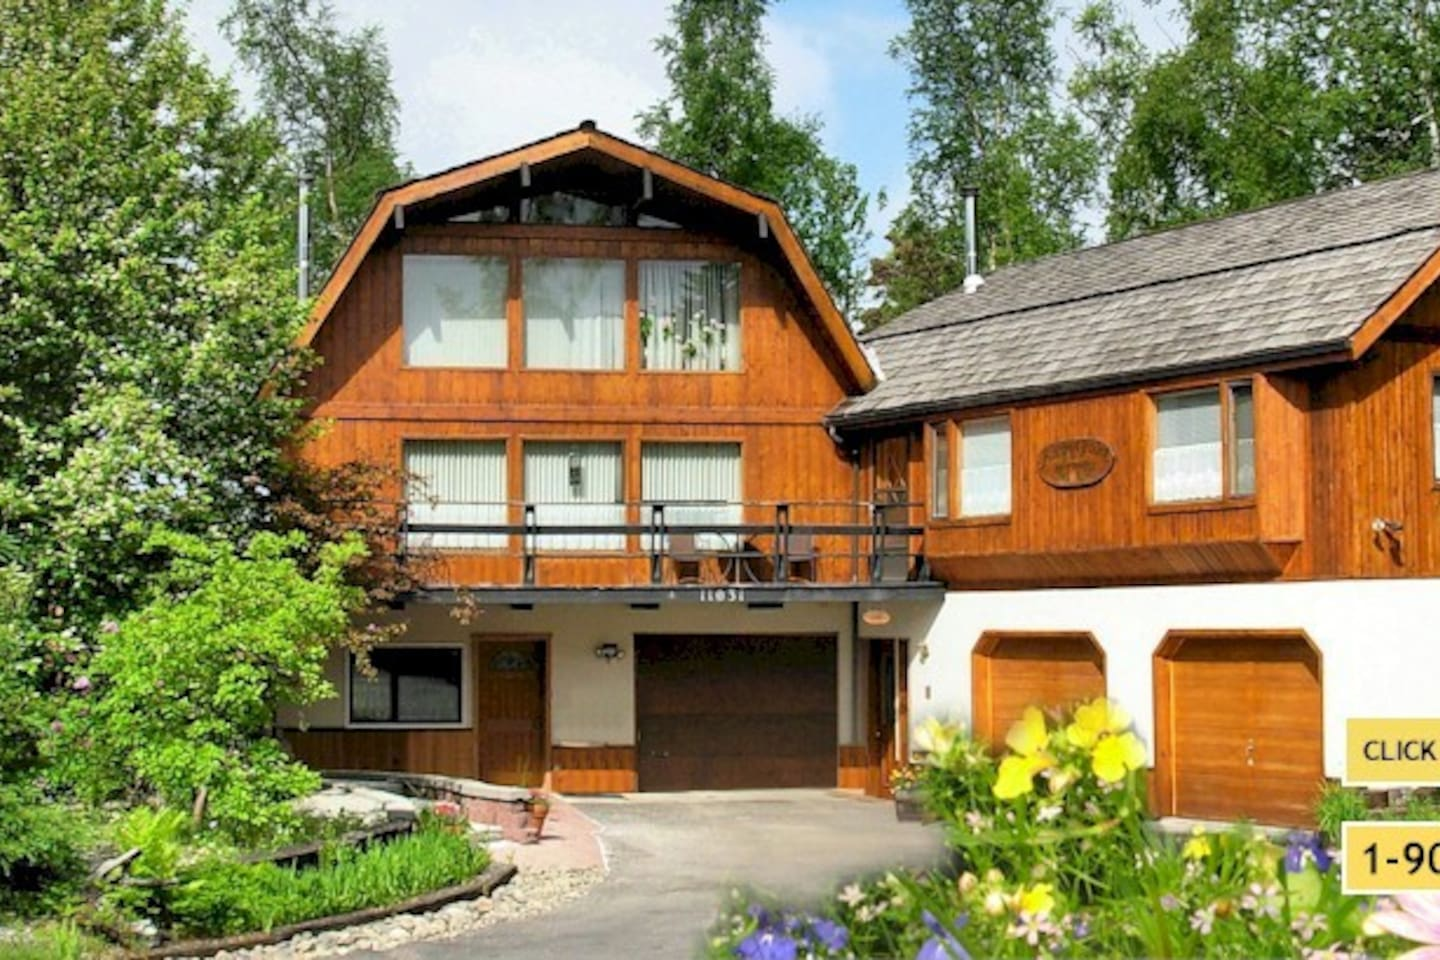 The Alaska Chalet Bed & Breakfast